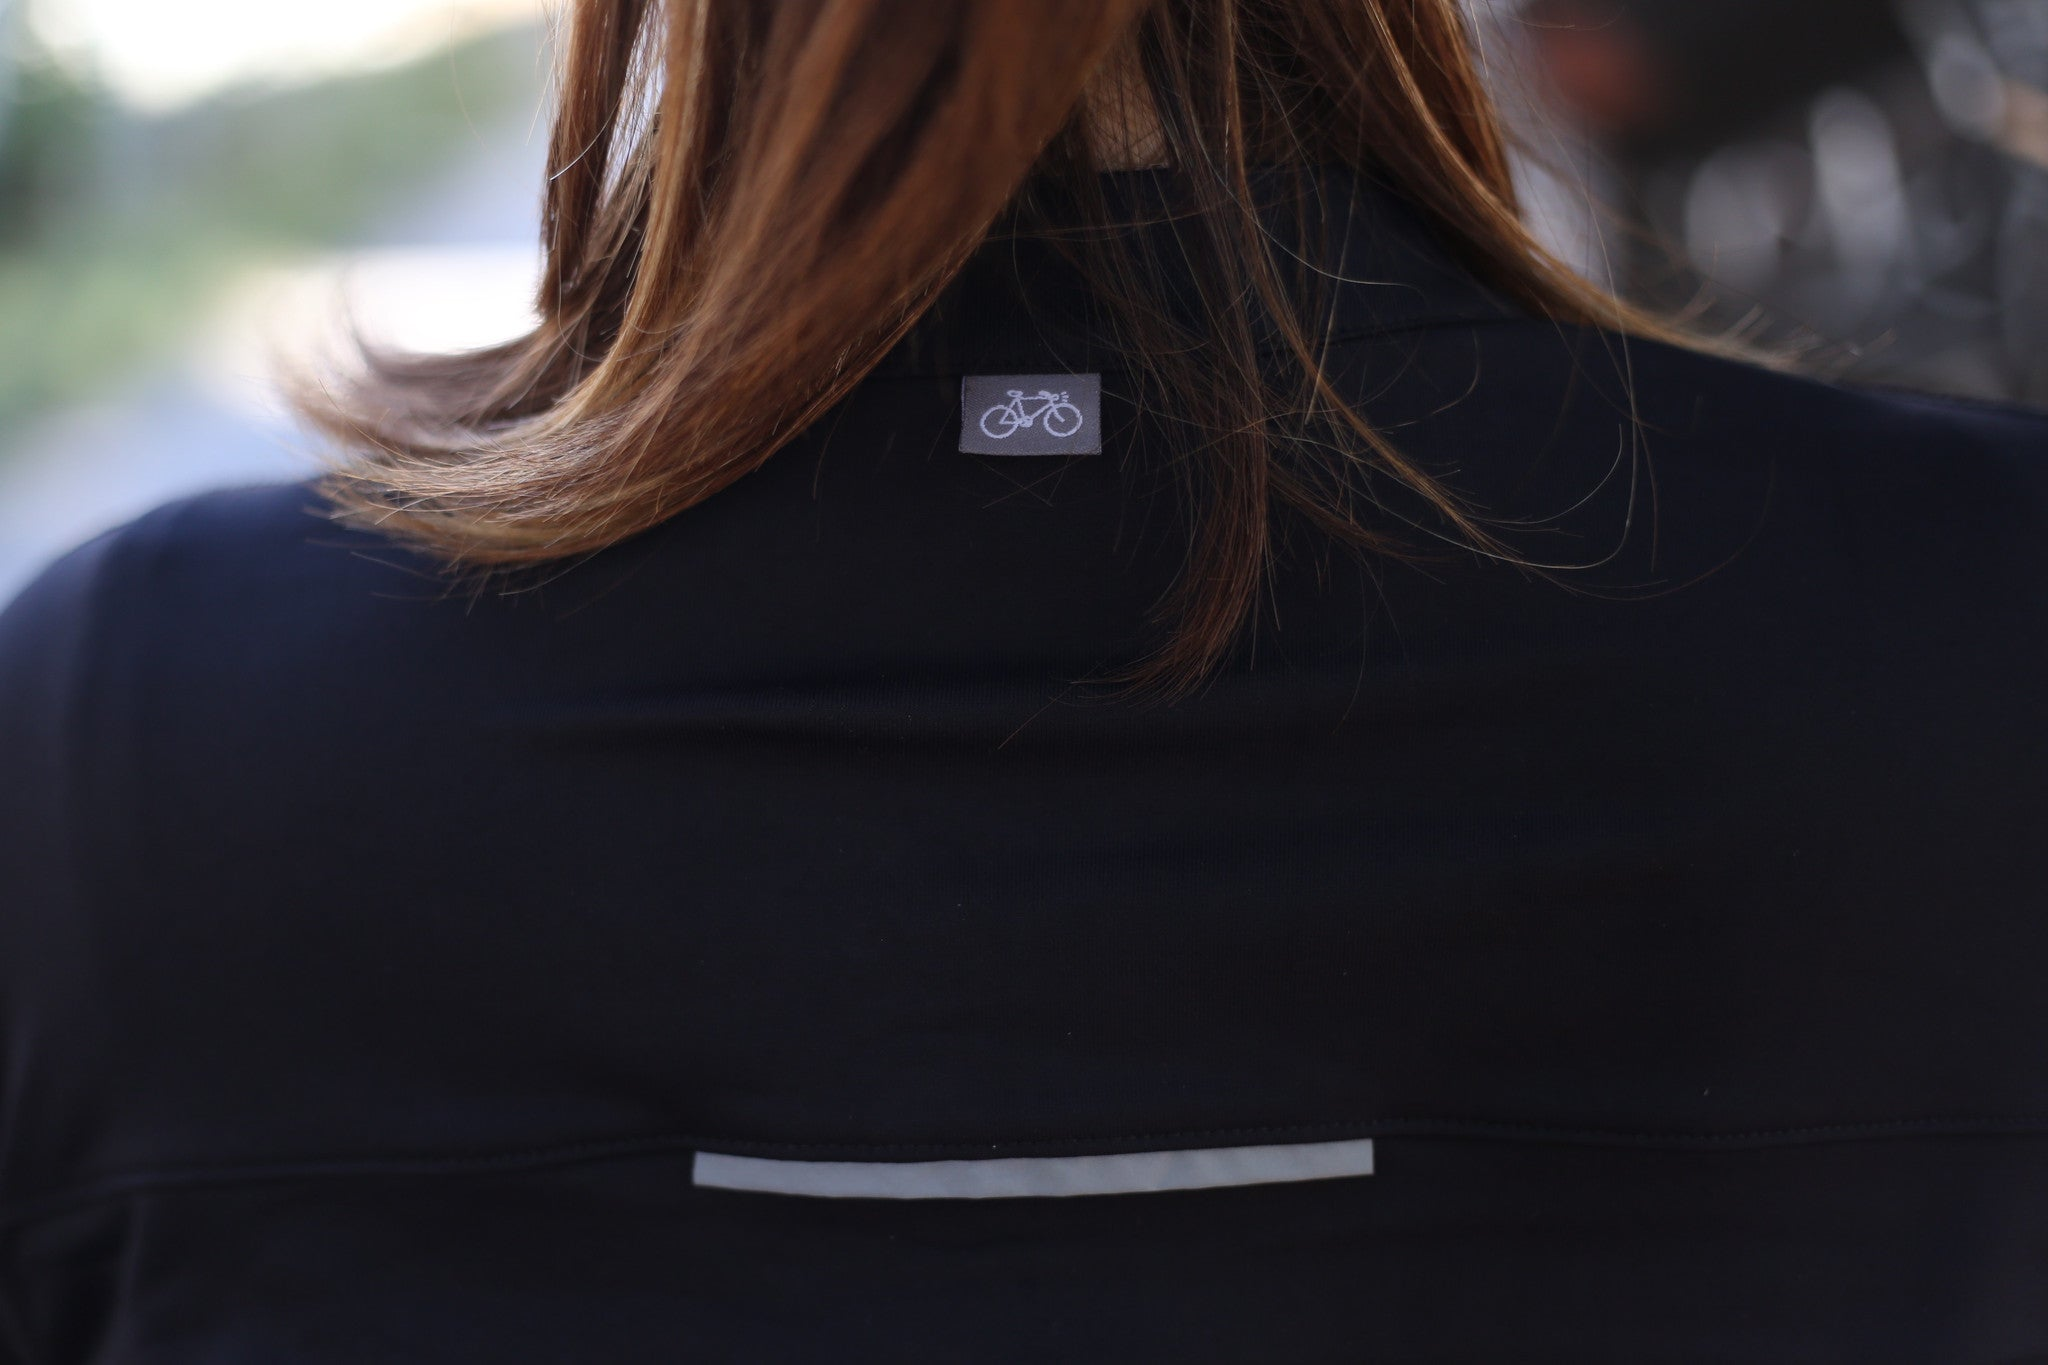 Women's Cycling Jacket